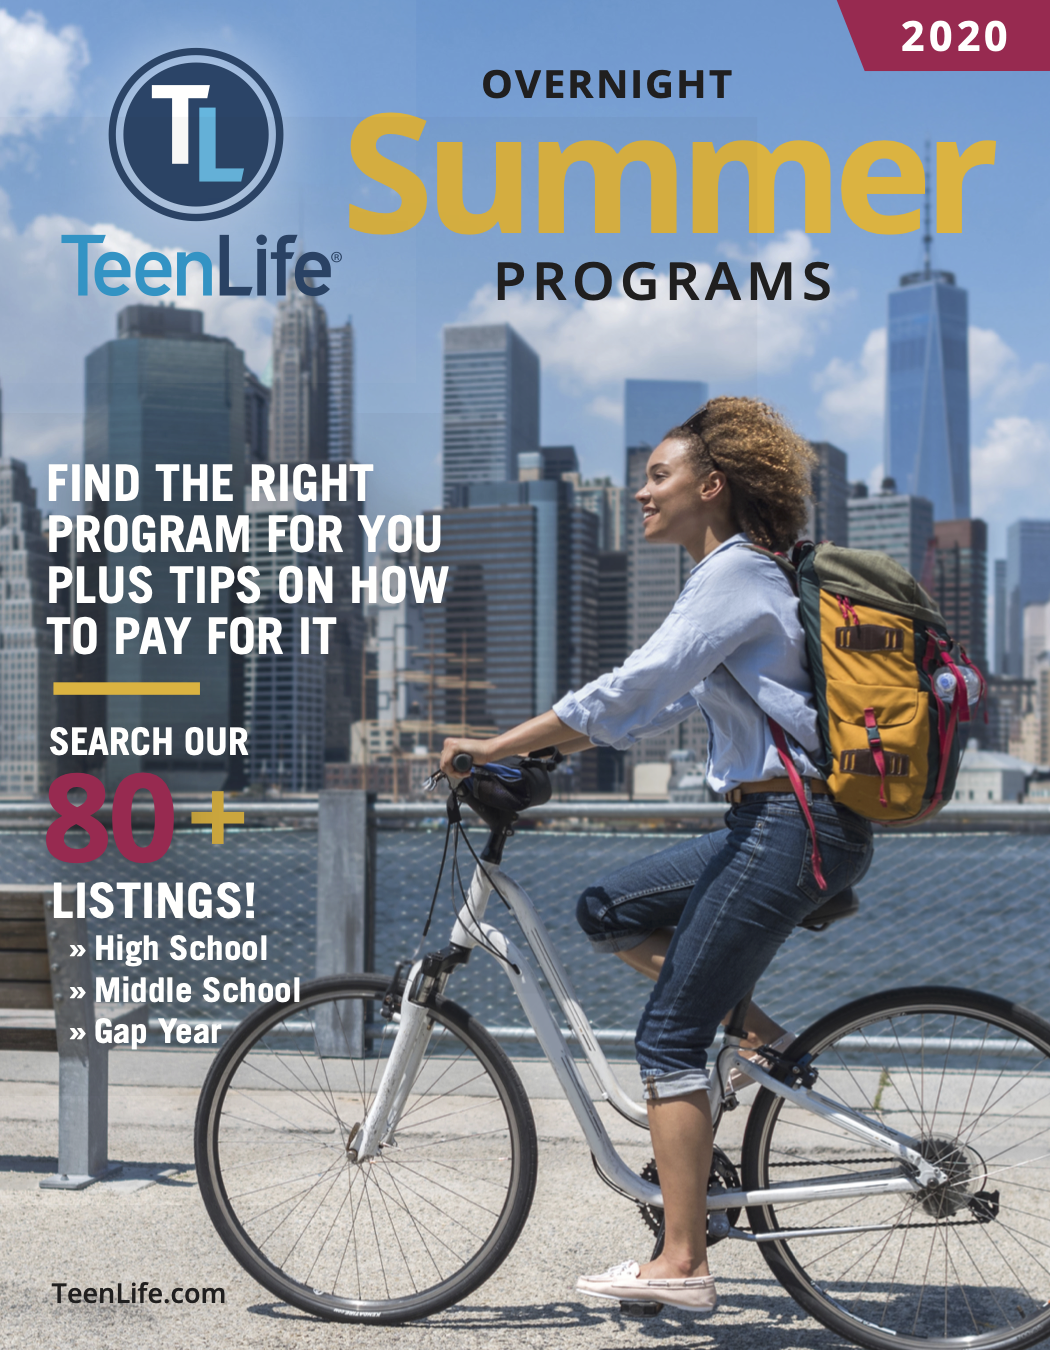 Guide to Overnight Summer Programs 2020